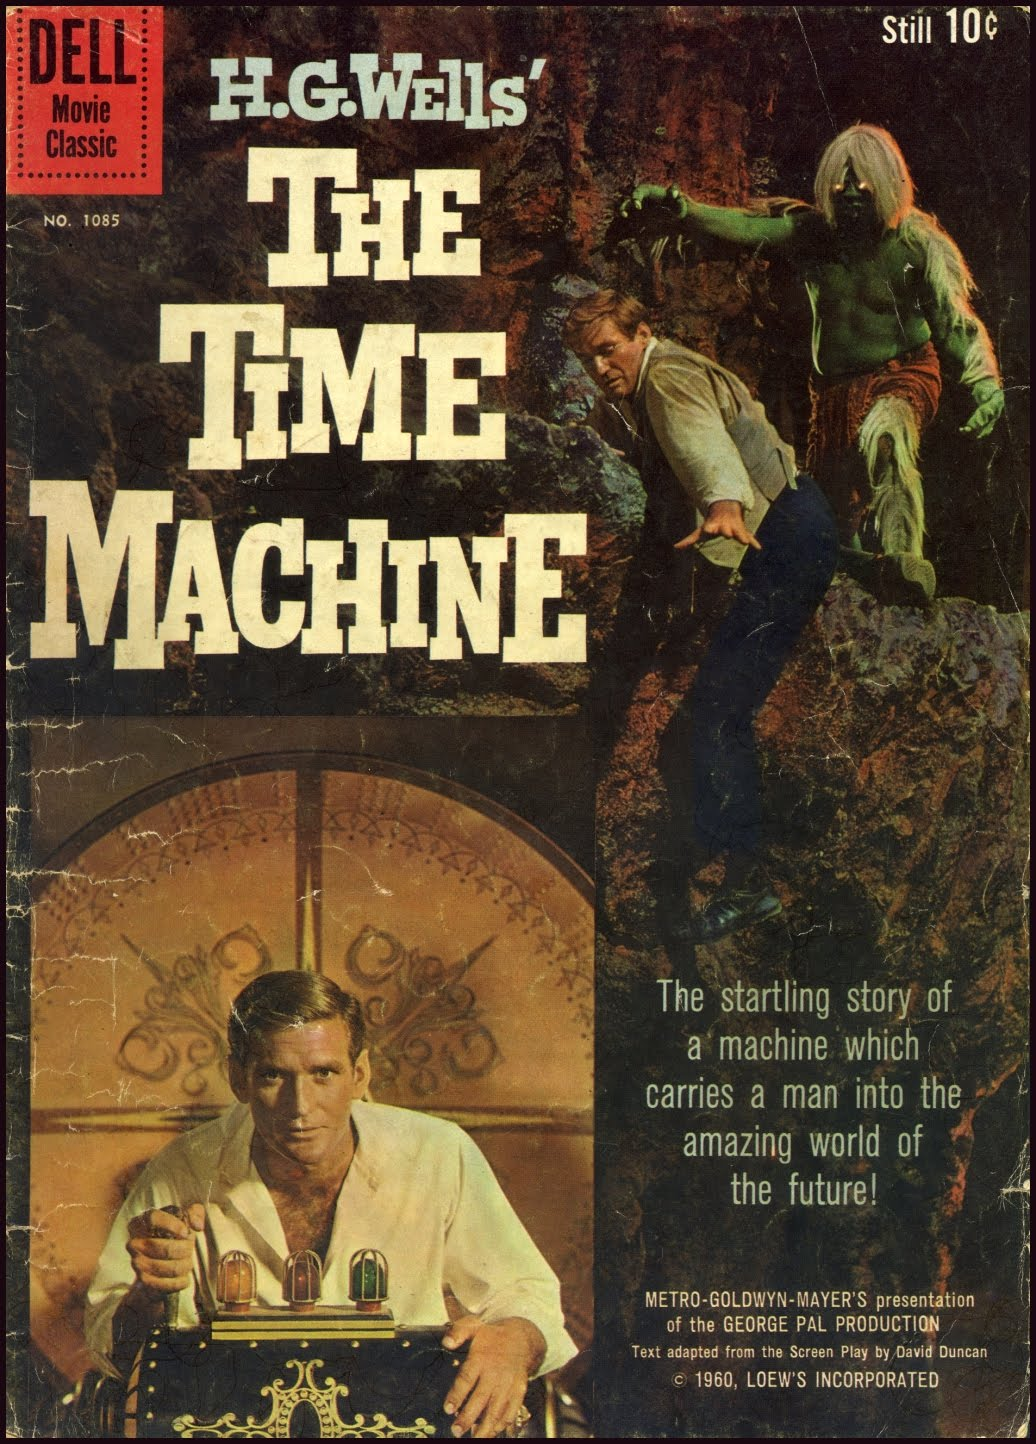 analysis of time machine This essay the time machine - analysis is available for you on essays24com search term papers, college essay examples and free essays on through life however, most of the time, it is there fault that they lack these necessities in the time machine by hg wells, the eloi had this problem.